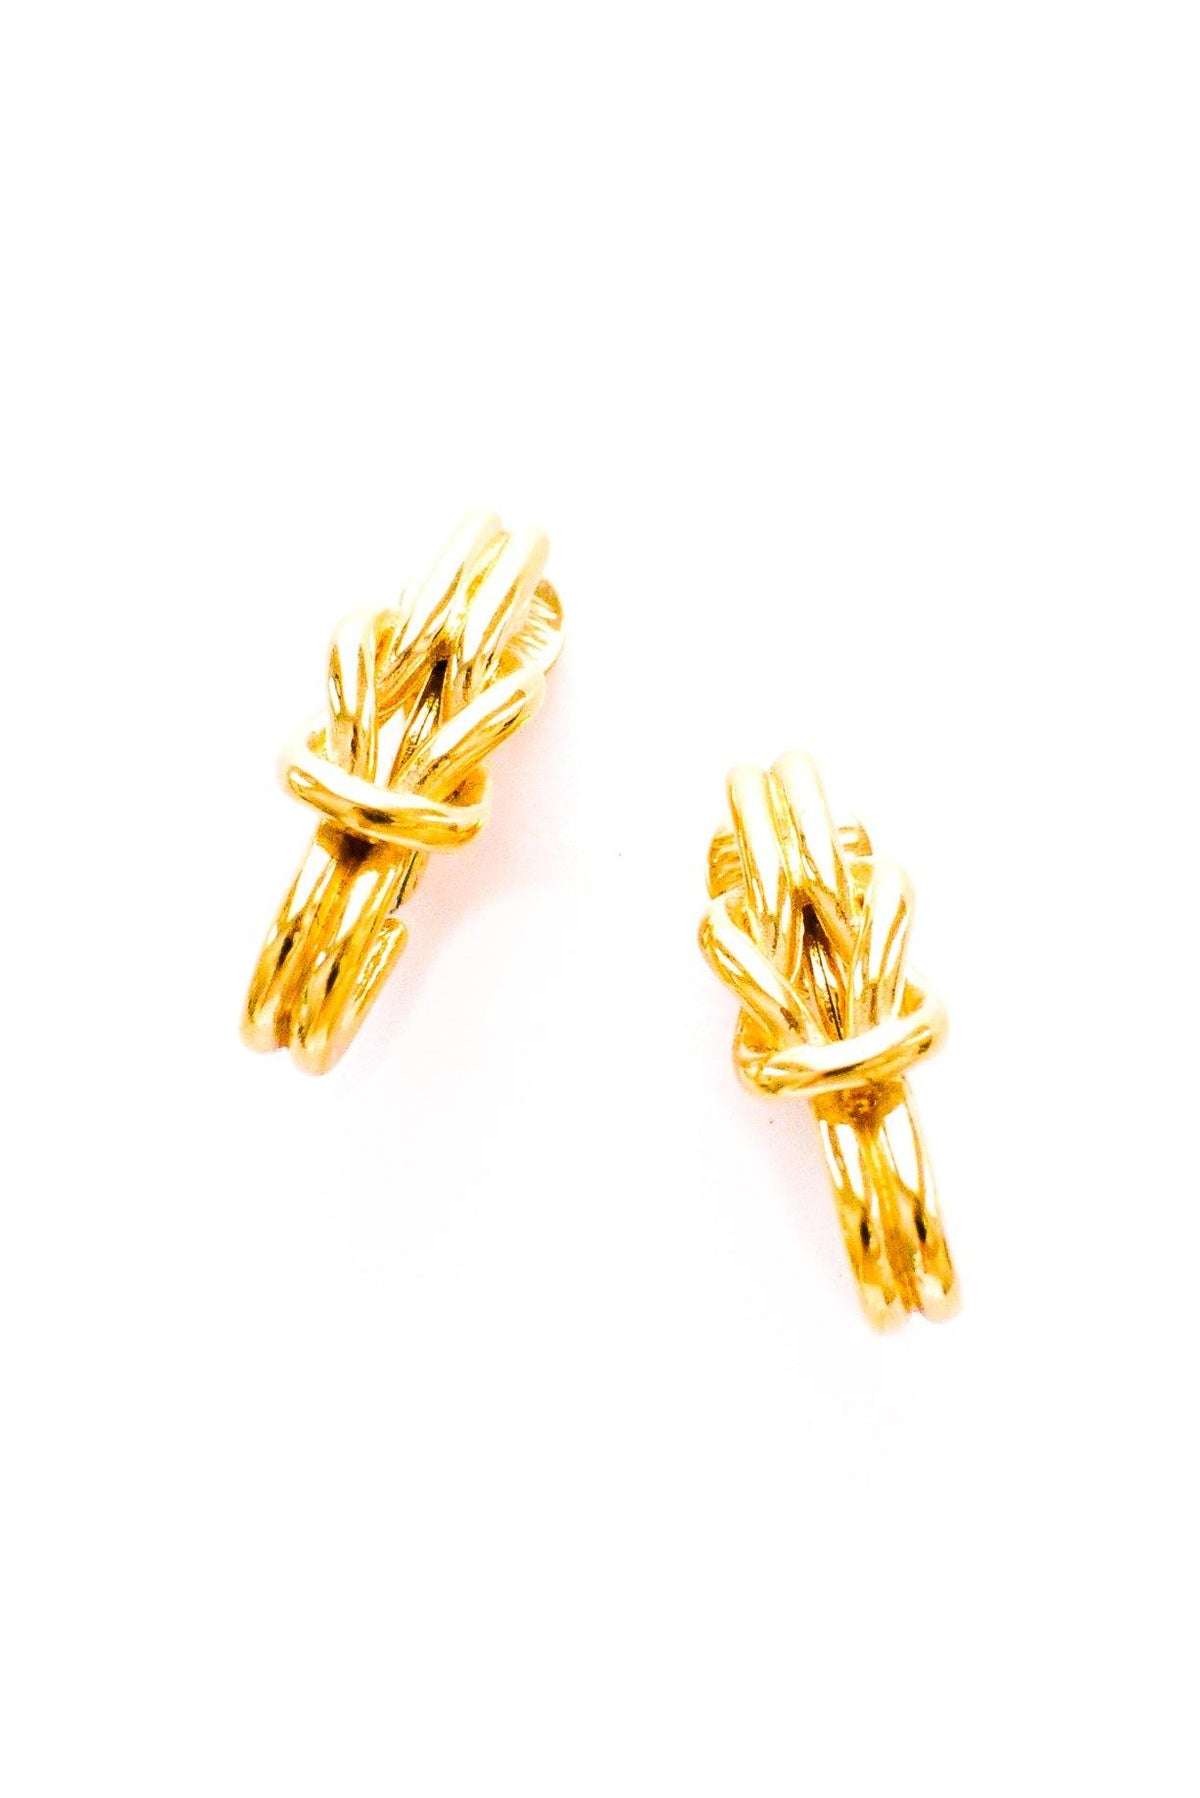 Vintage gold knot earrings from Sweet & Spark.